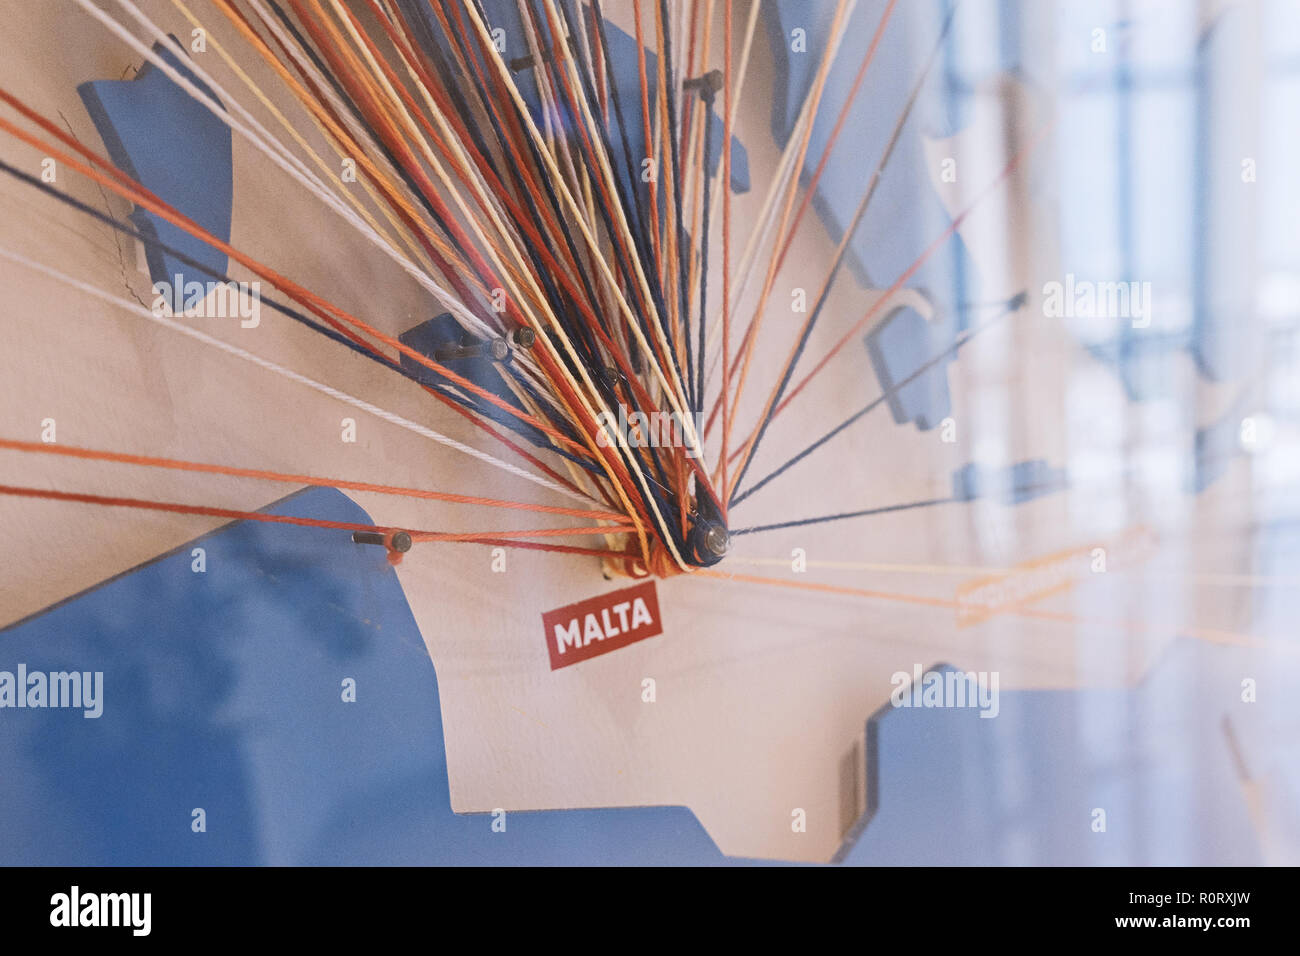 Abstract colored threads stretched on pins on map, depicting flight directions from Malta around World. Logistic grid, geometric, connections, isometrics and spirograph concept - Stock Image